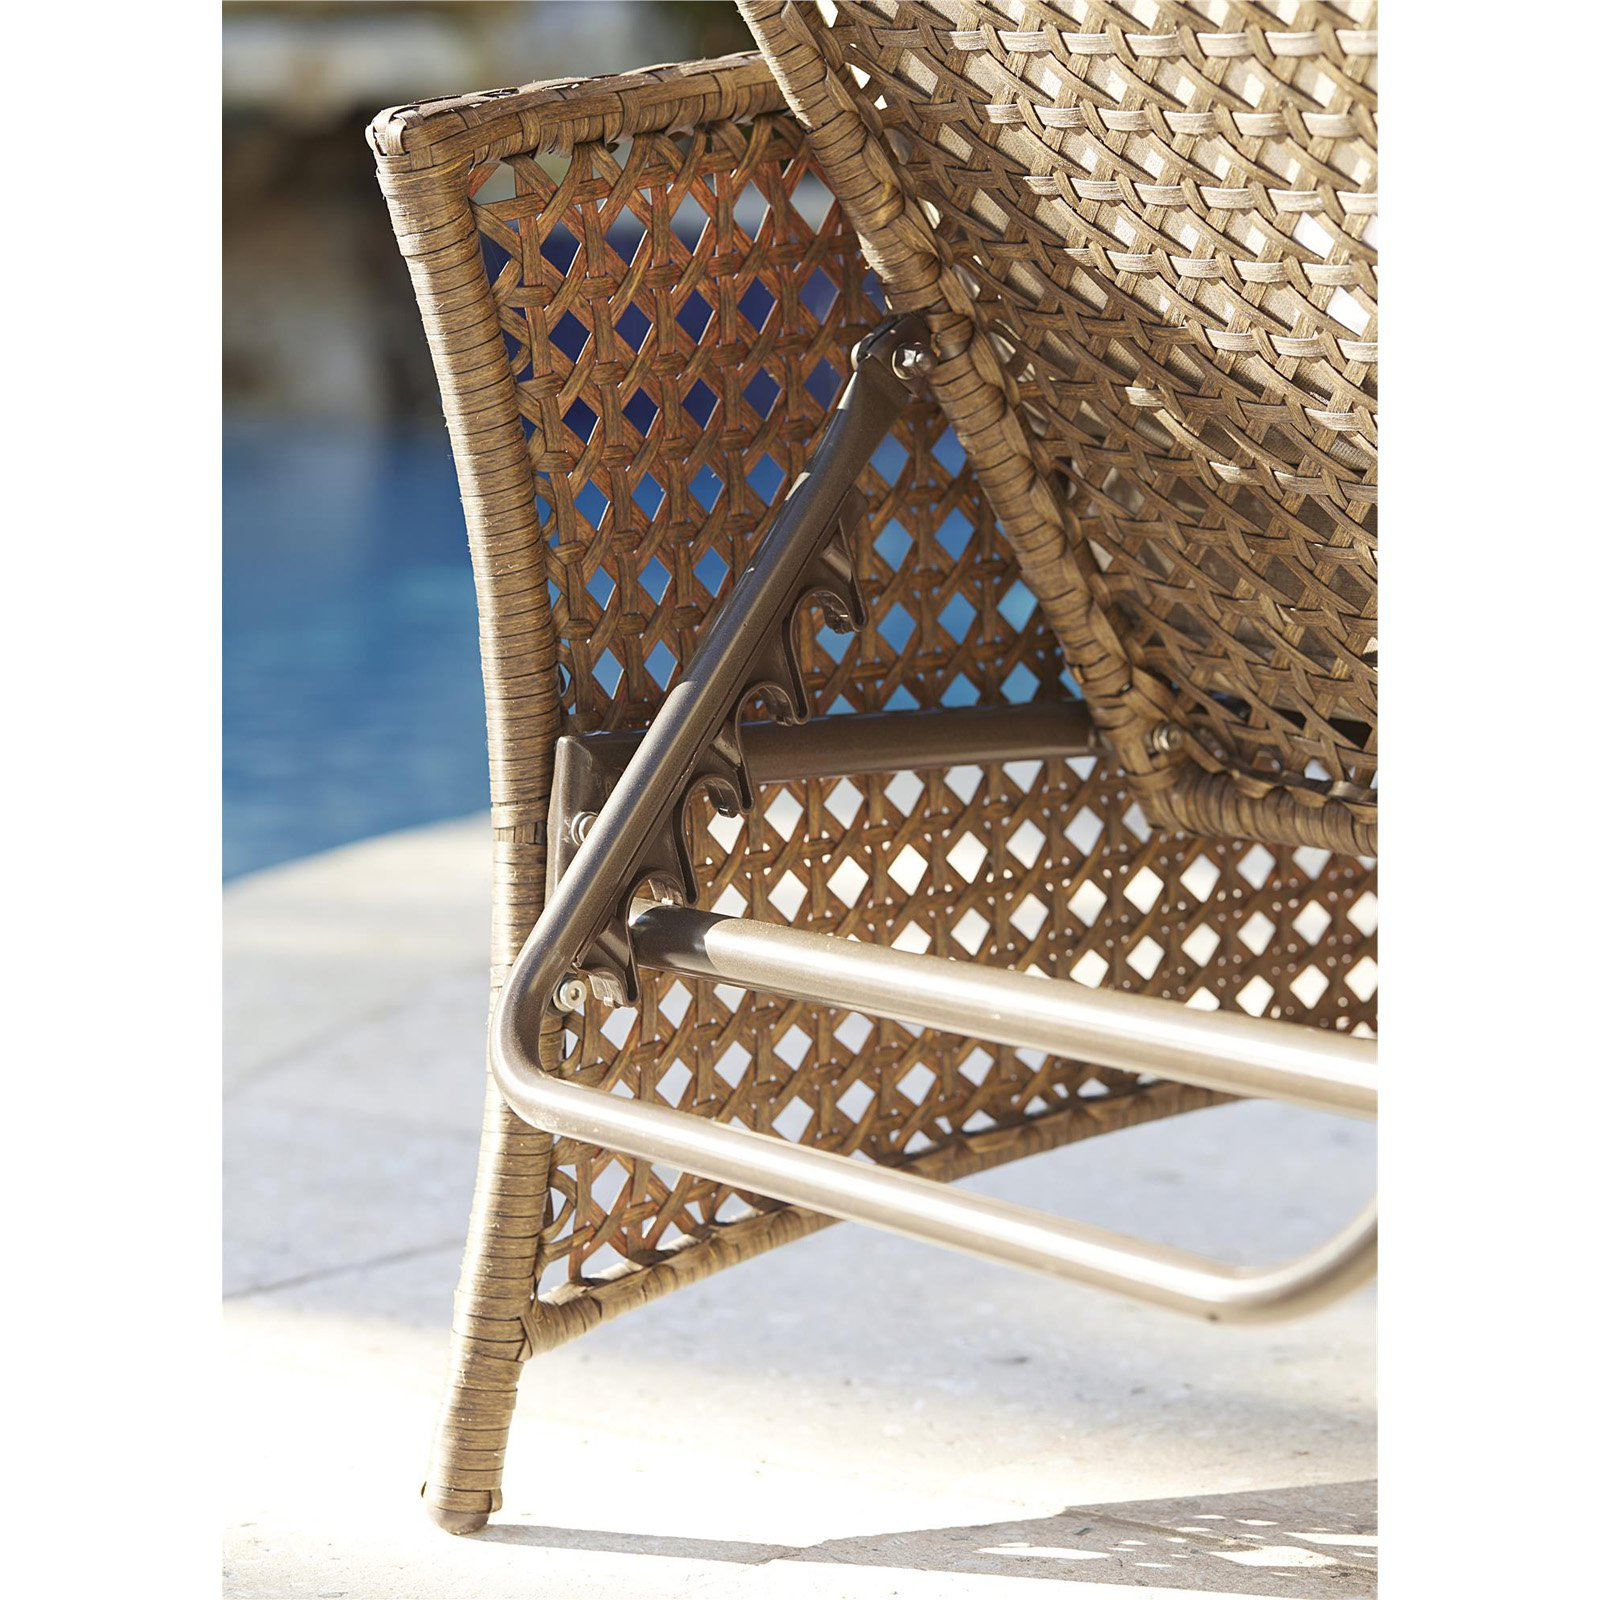 Cosco Outdoor Steel Woven Wicker Chaise Lounge Chairs In Most Recently Released Cosco Outdoor Adjustable Chaise Lounge Chair Lakewood Ranch Steel Woven Wicker Patio Furniture With Cushion, Brown (View 4 of 25)